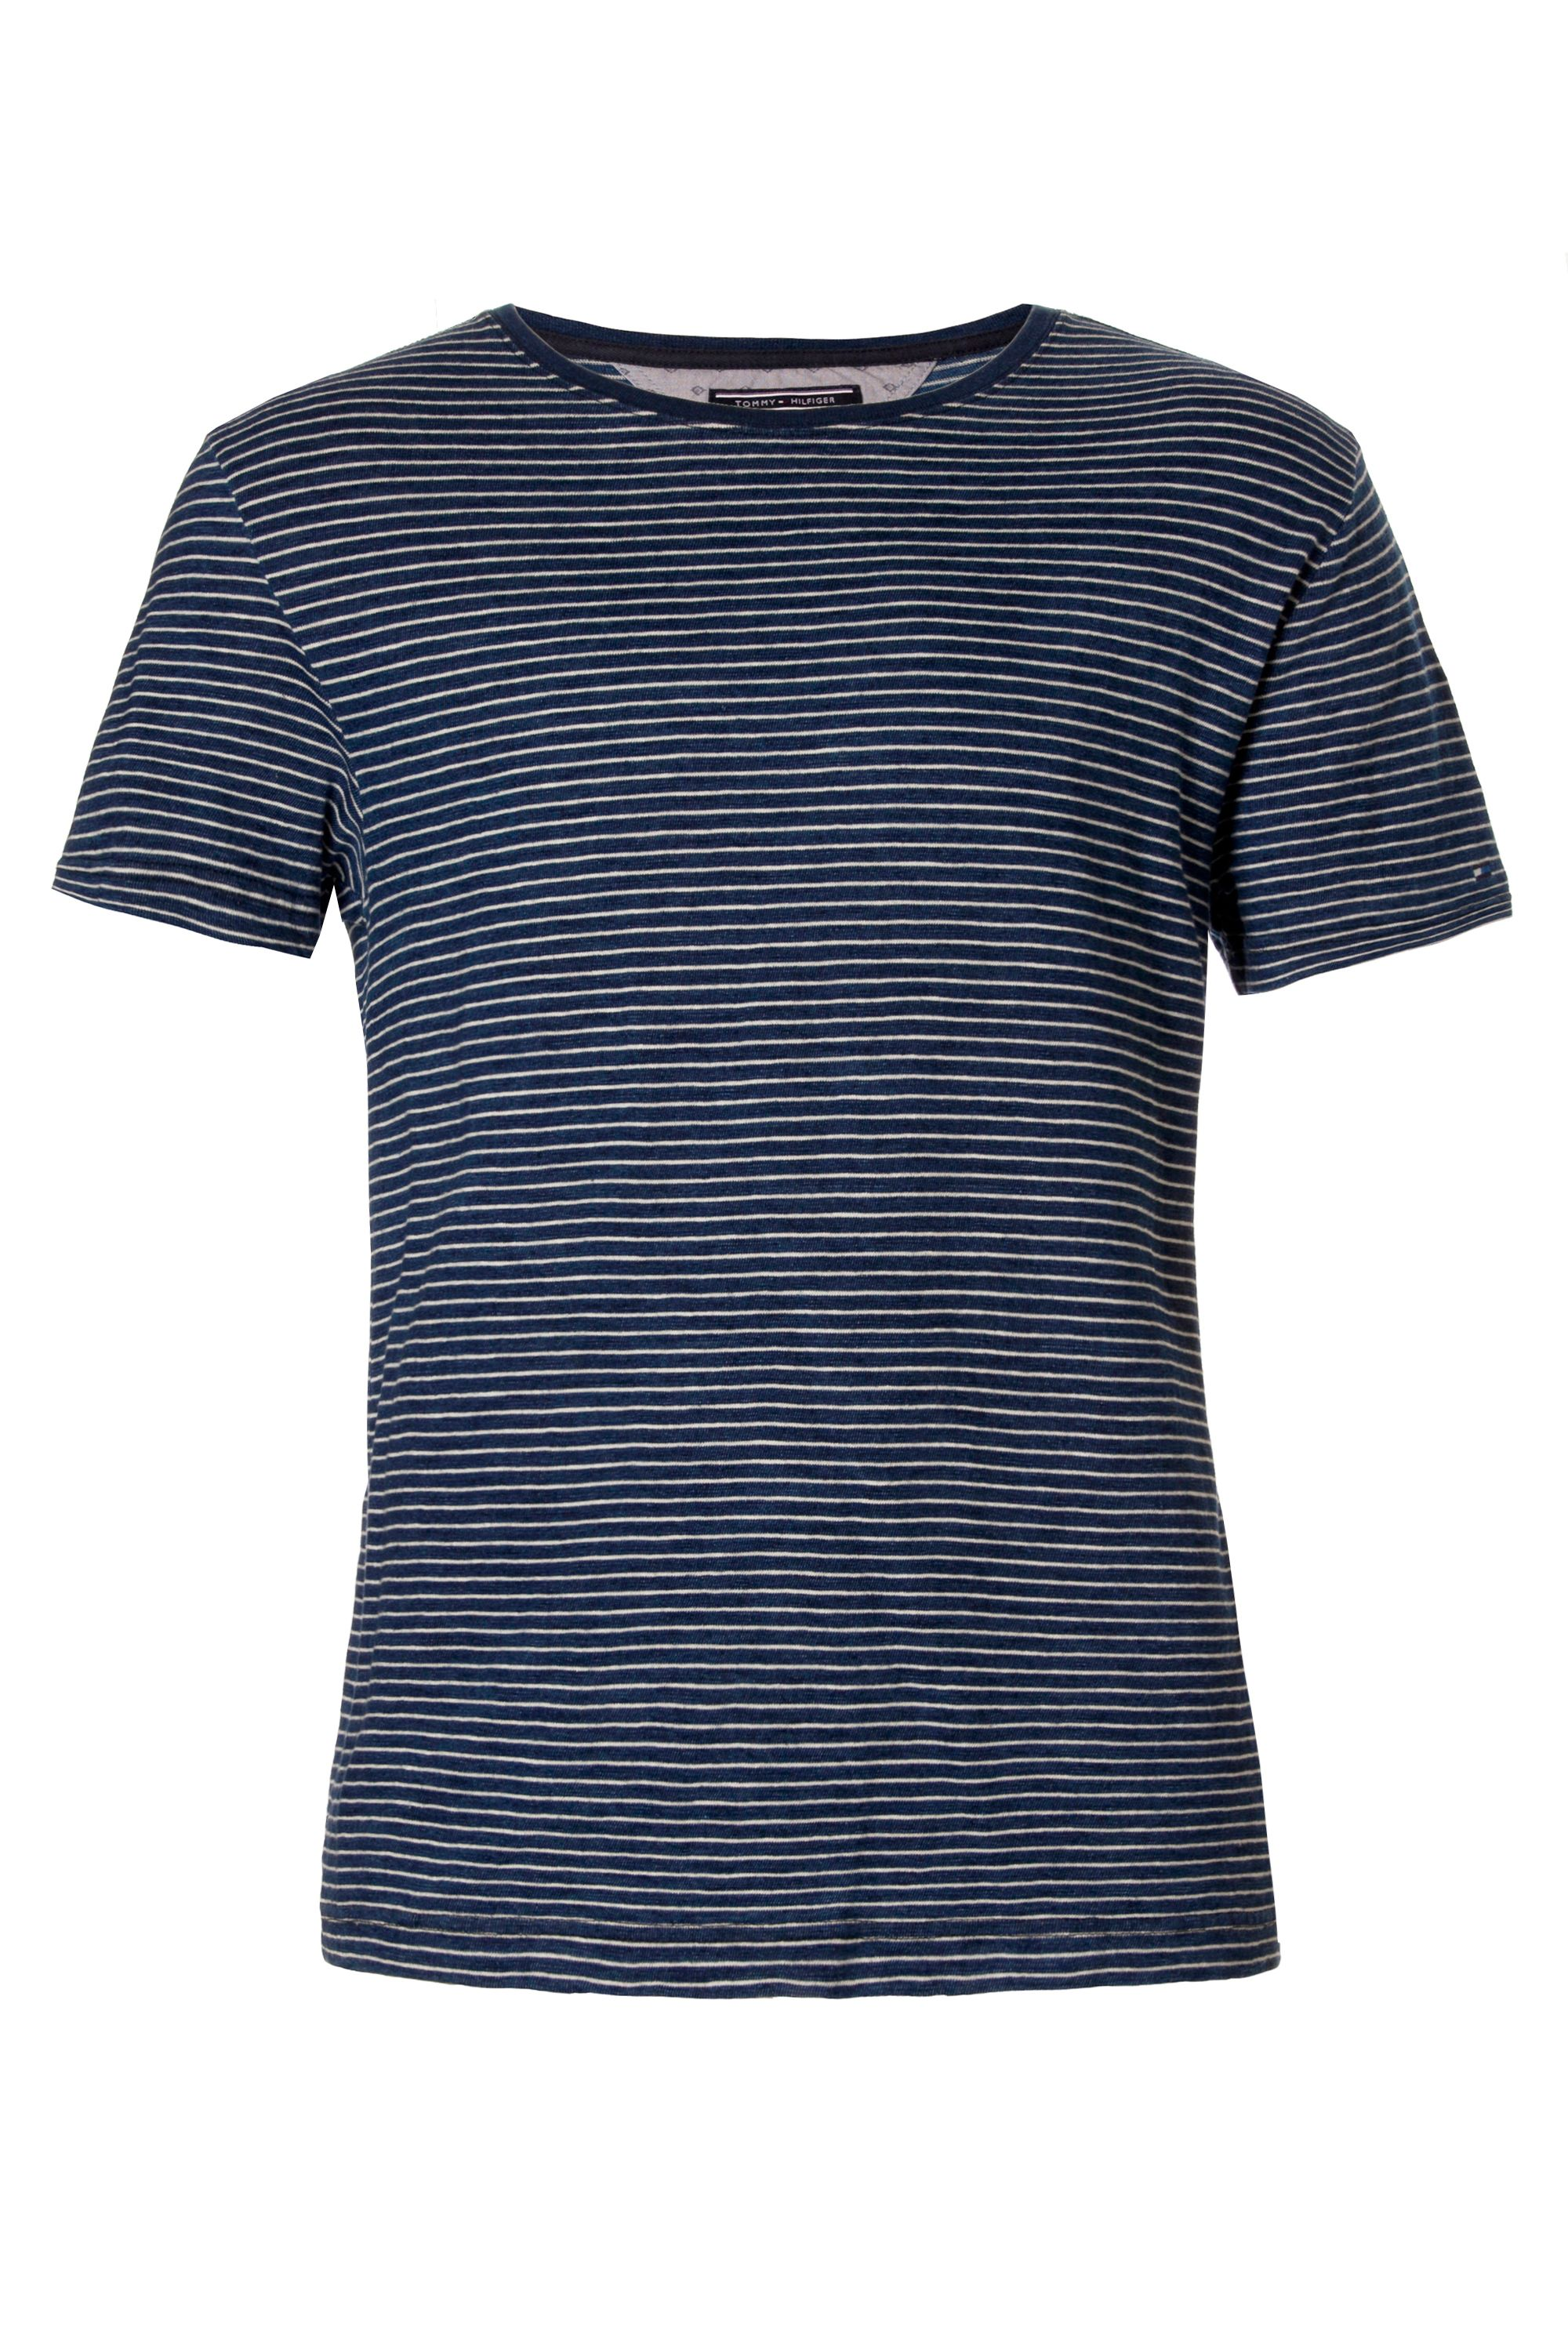 Sid stripe t-shirt